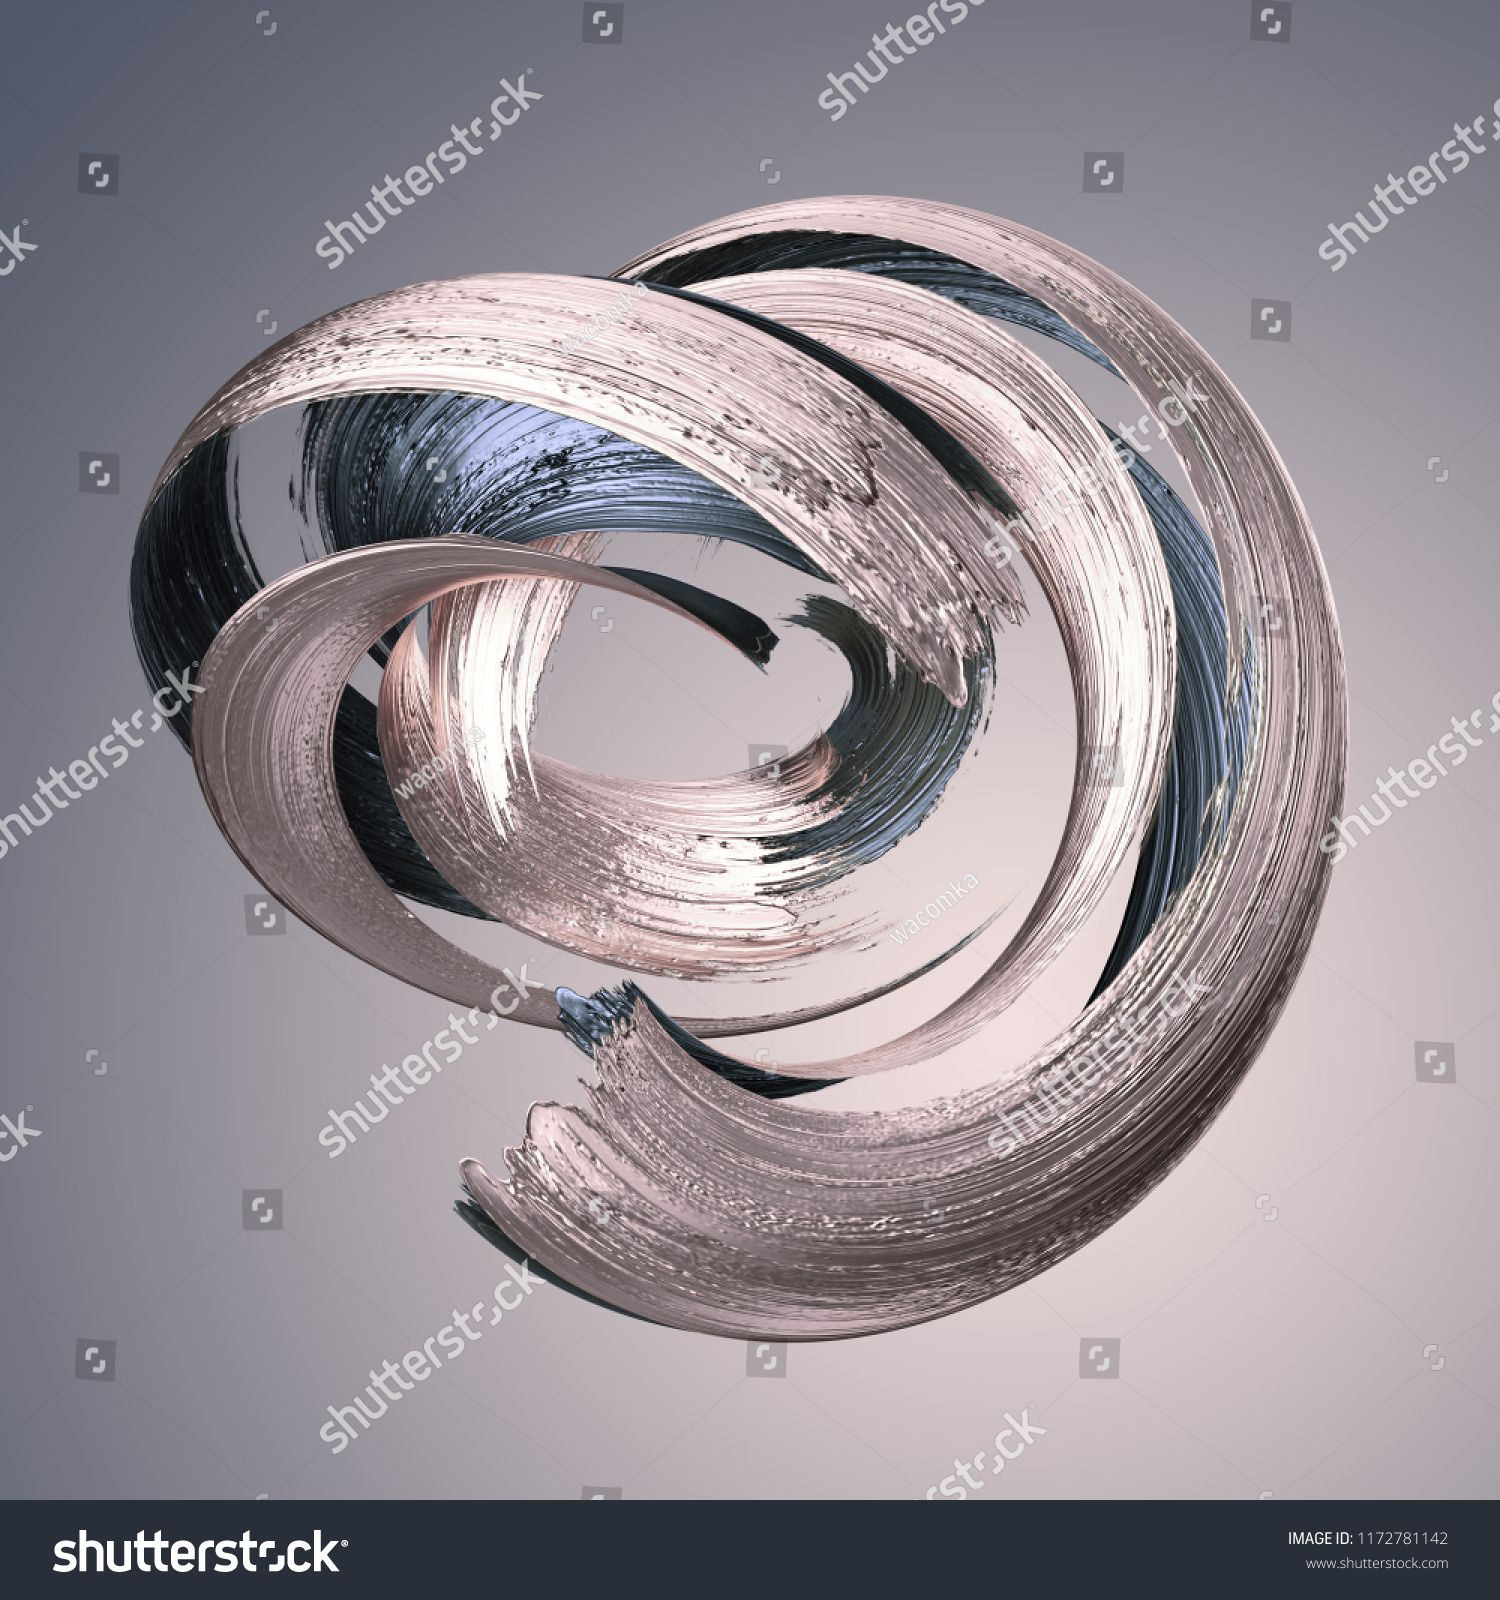 3d Render Abstract Metallic Brushstroke Silver Paint Smear Splashing Platinum Shape Rose Gold Shiny Foil Ribbon In 2020 Abstract Silver Paint Background Design